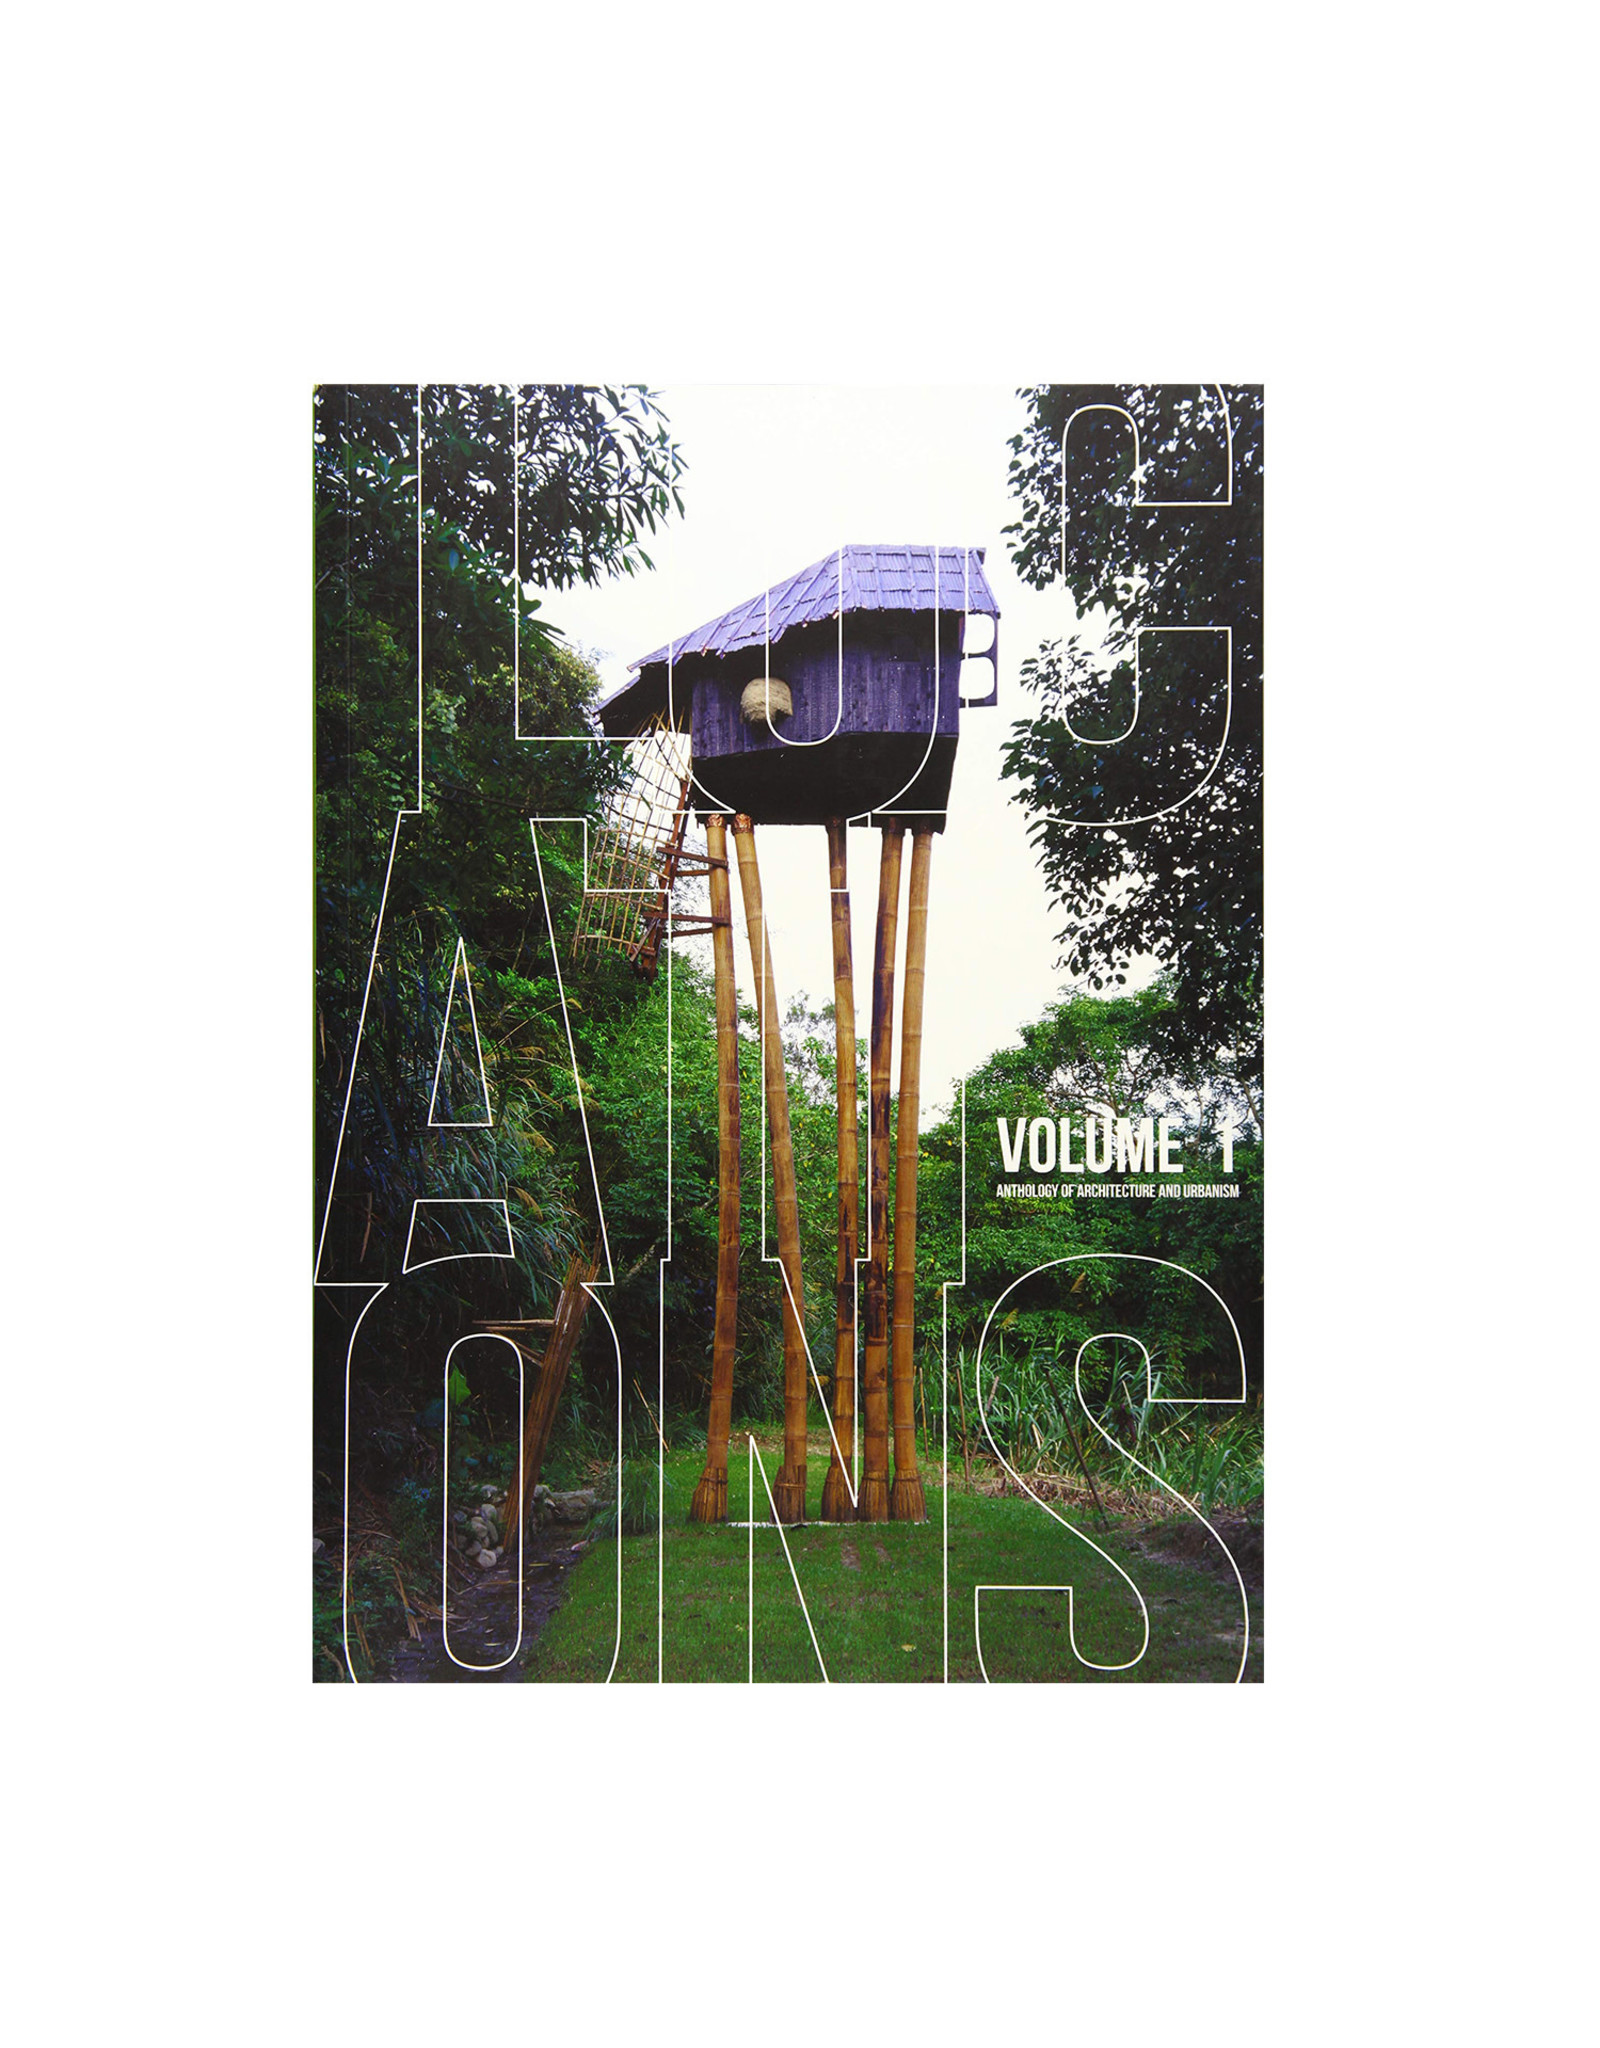 Locations: Volume 1 Anthology of Architecture and Urbanism